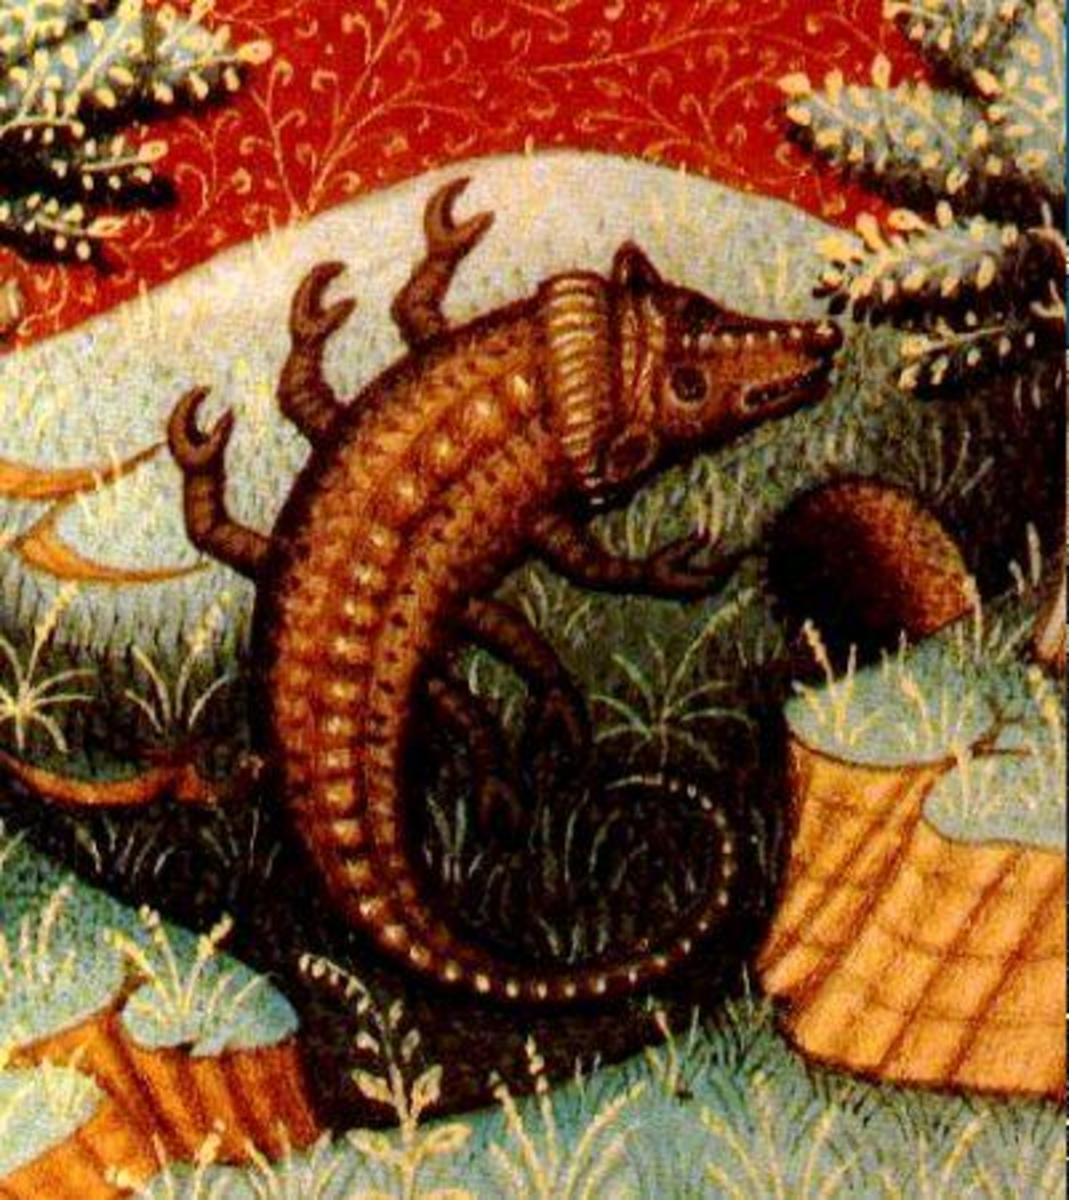 Here is an unusual image representing the Scorpio sun sign. I think it looks more like a lizard, another Scorpio symbol.